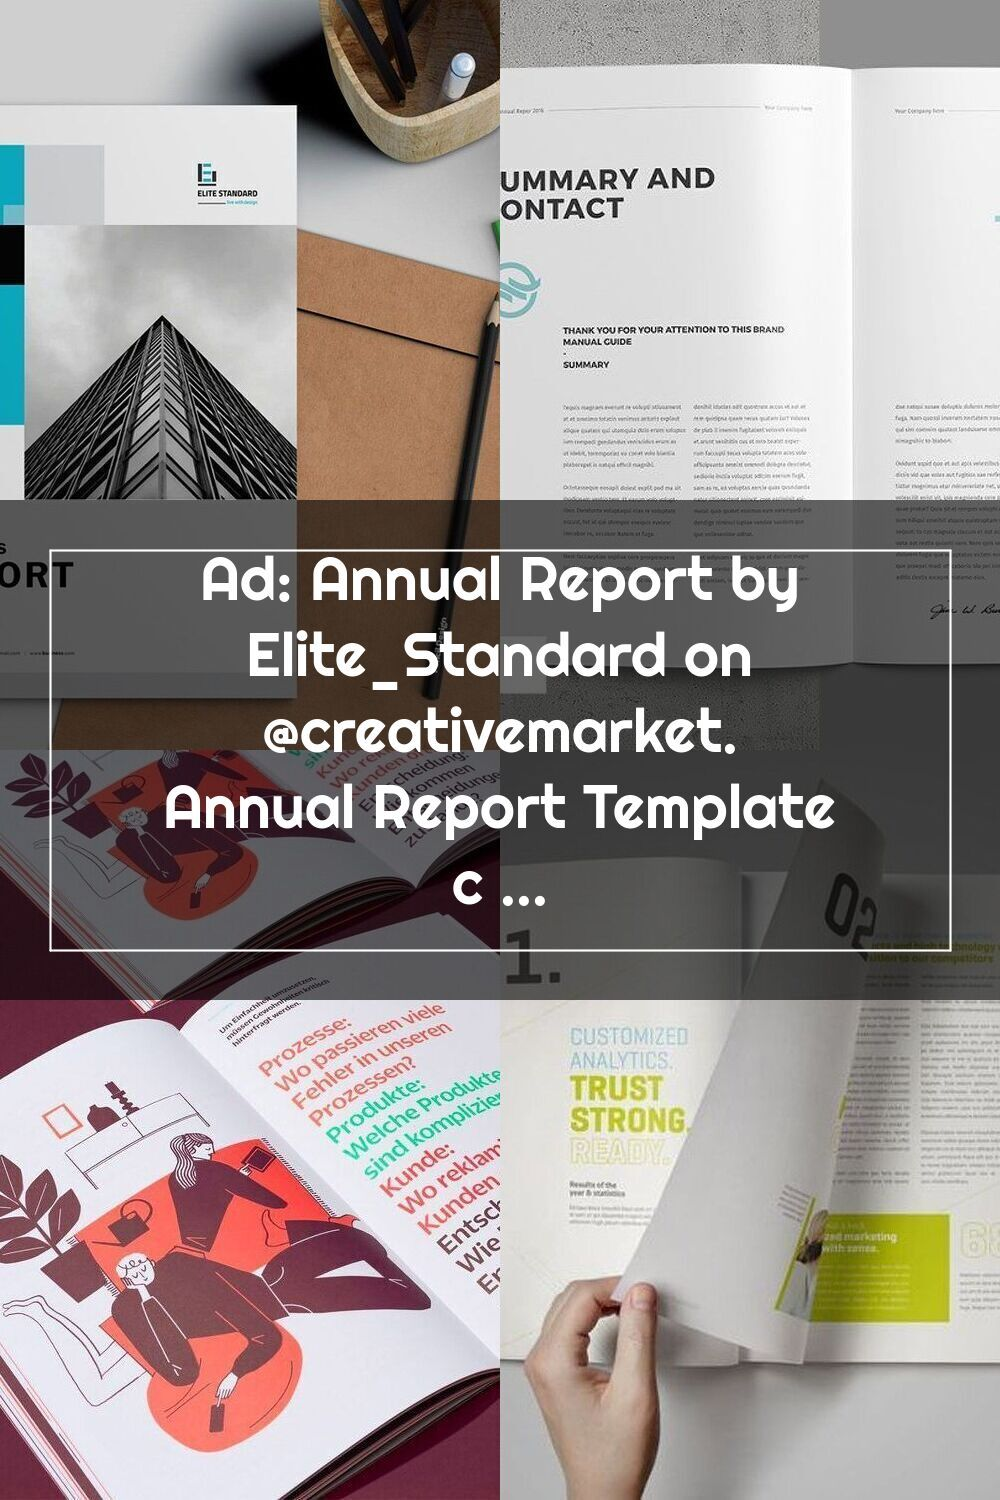 Ad annual report by elite_standard on creativemarket